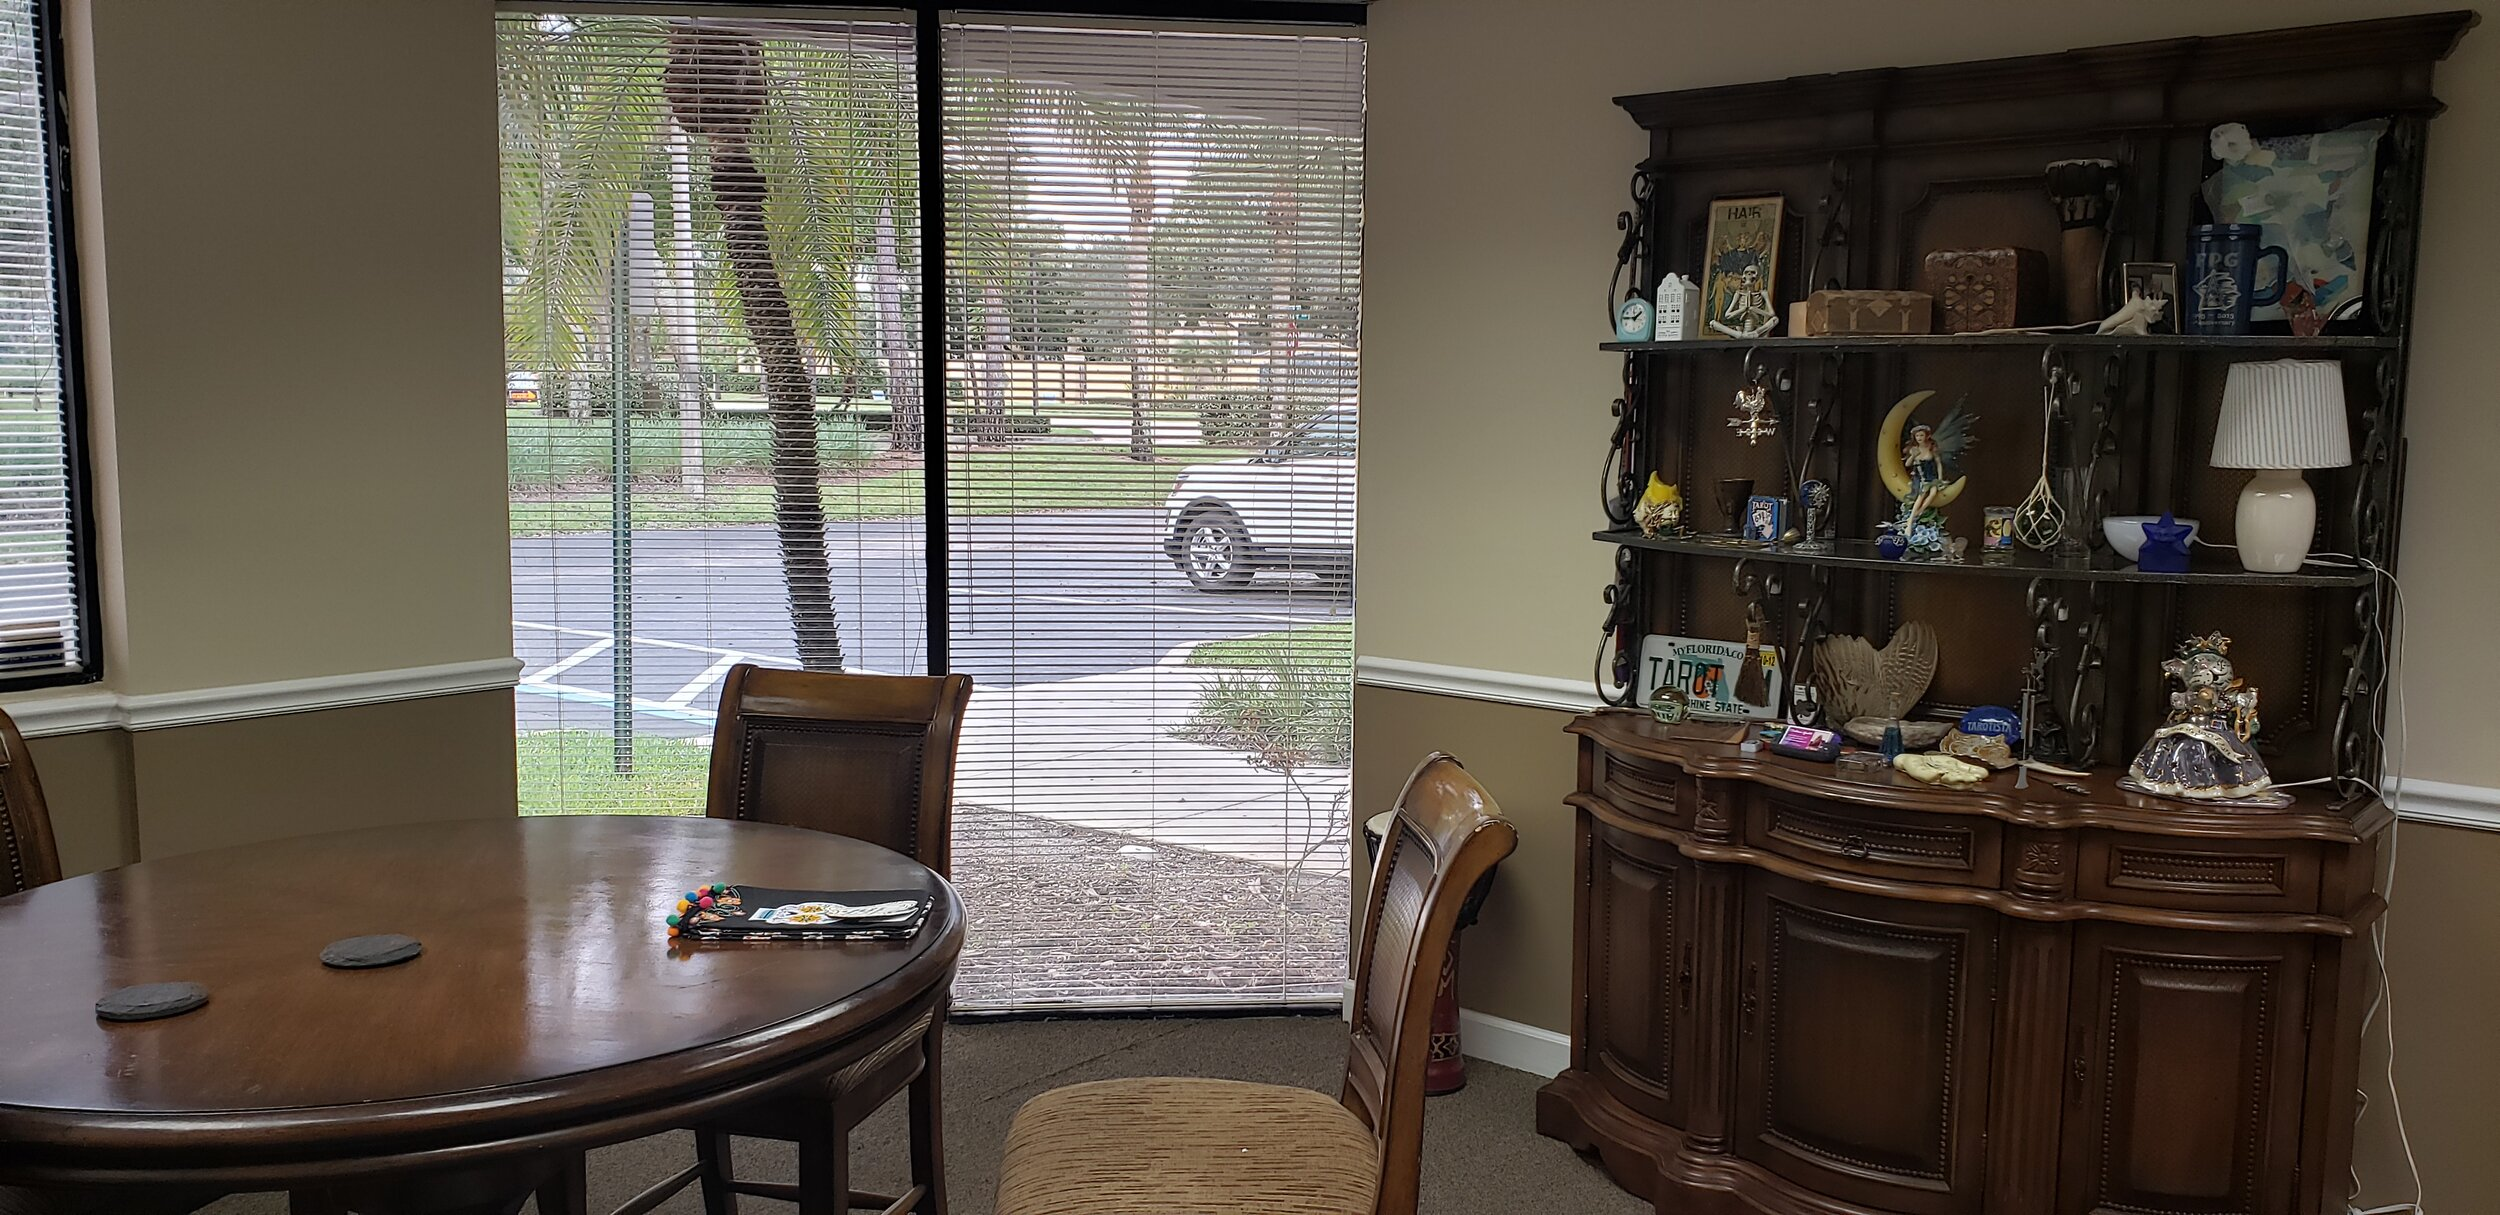 Join me for a reading in my new office in Palm City!